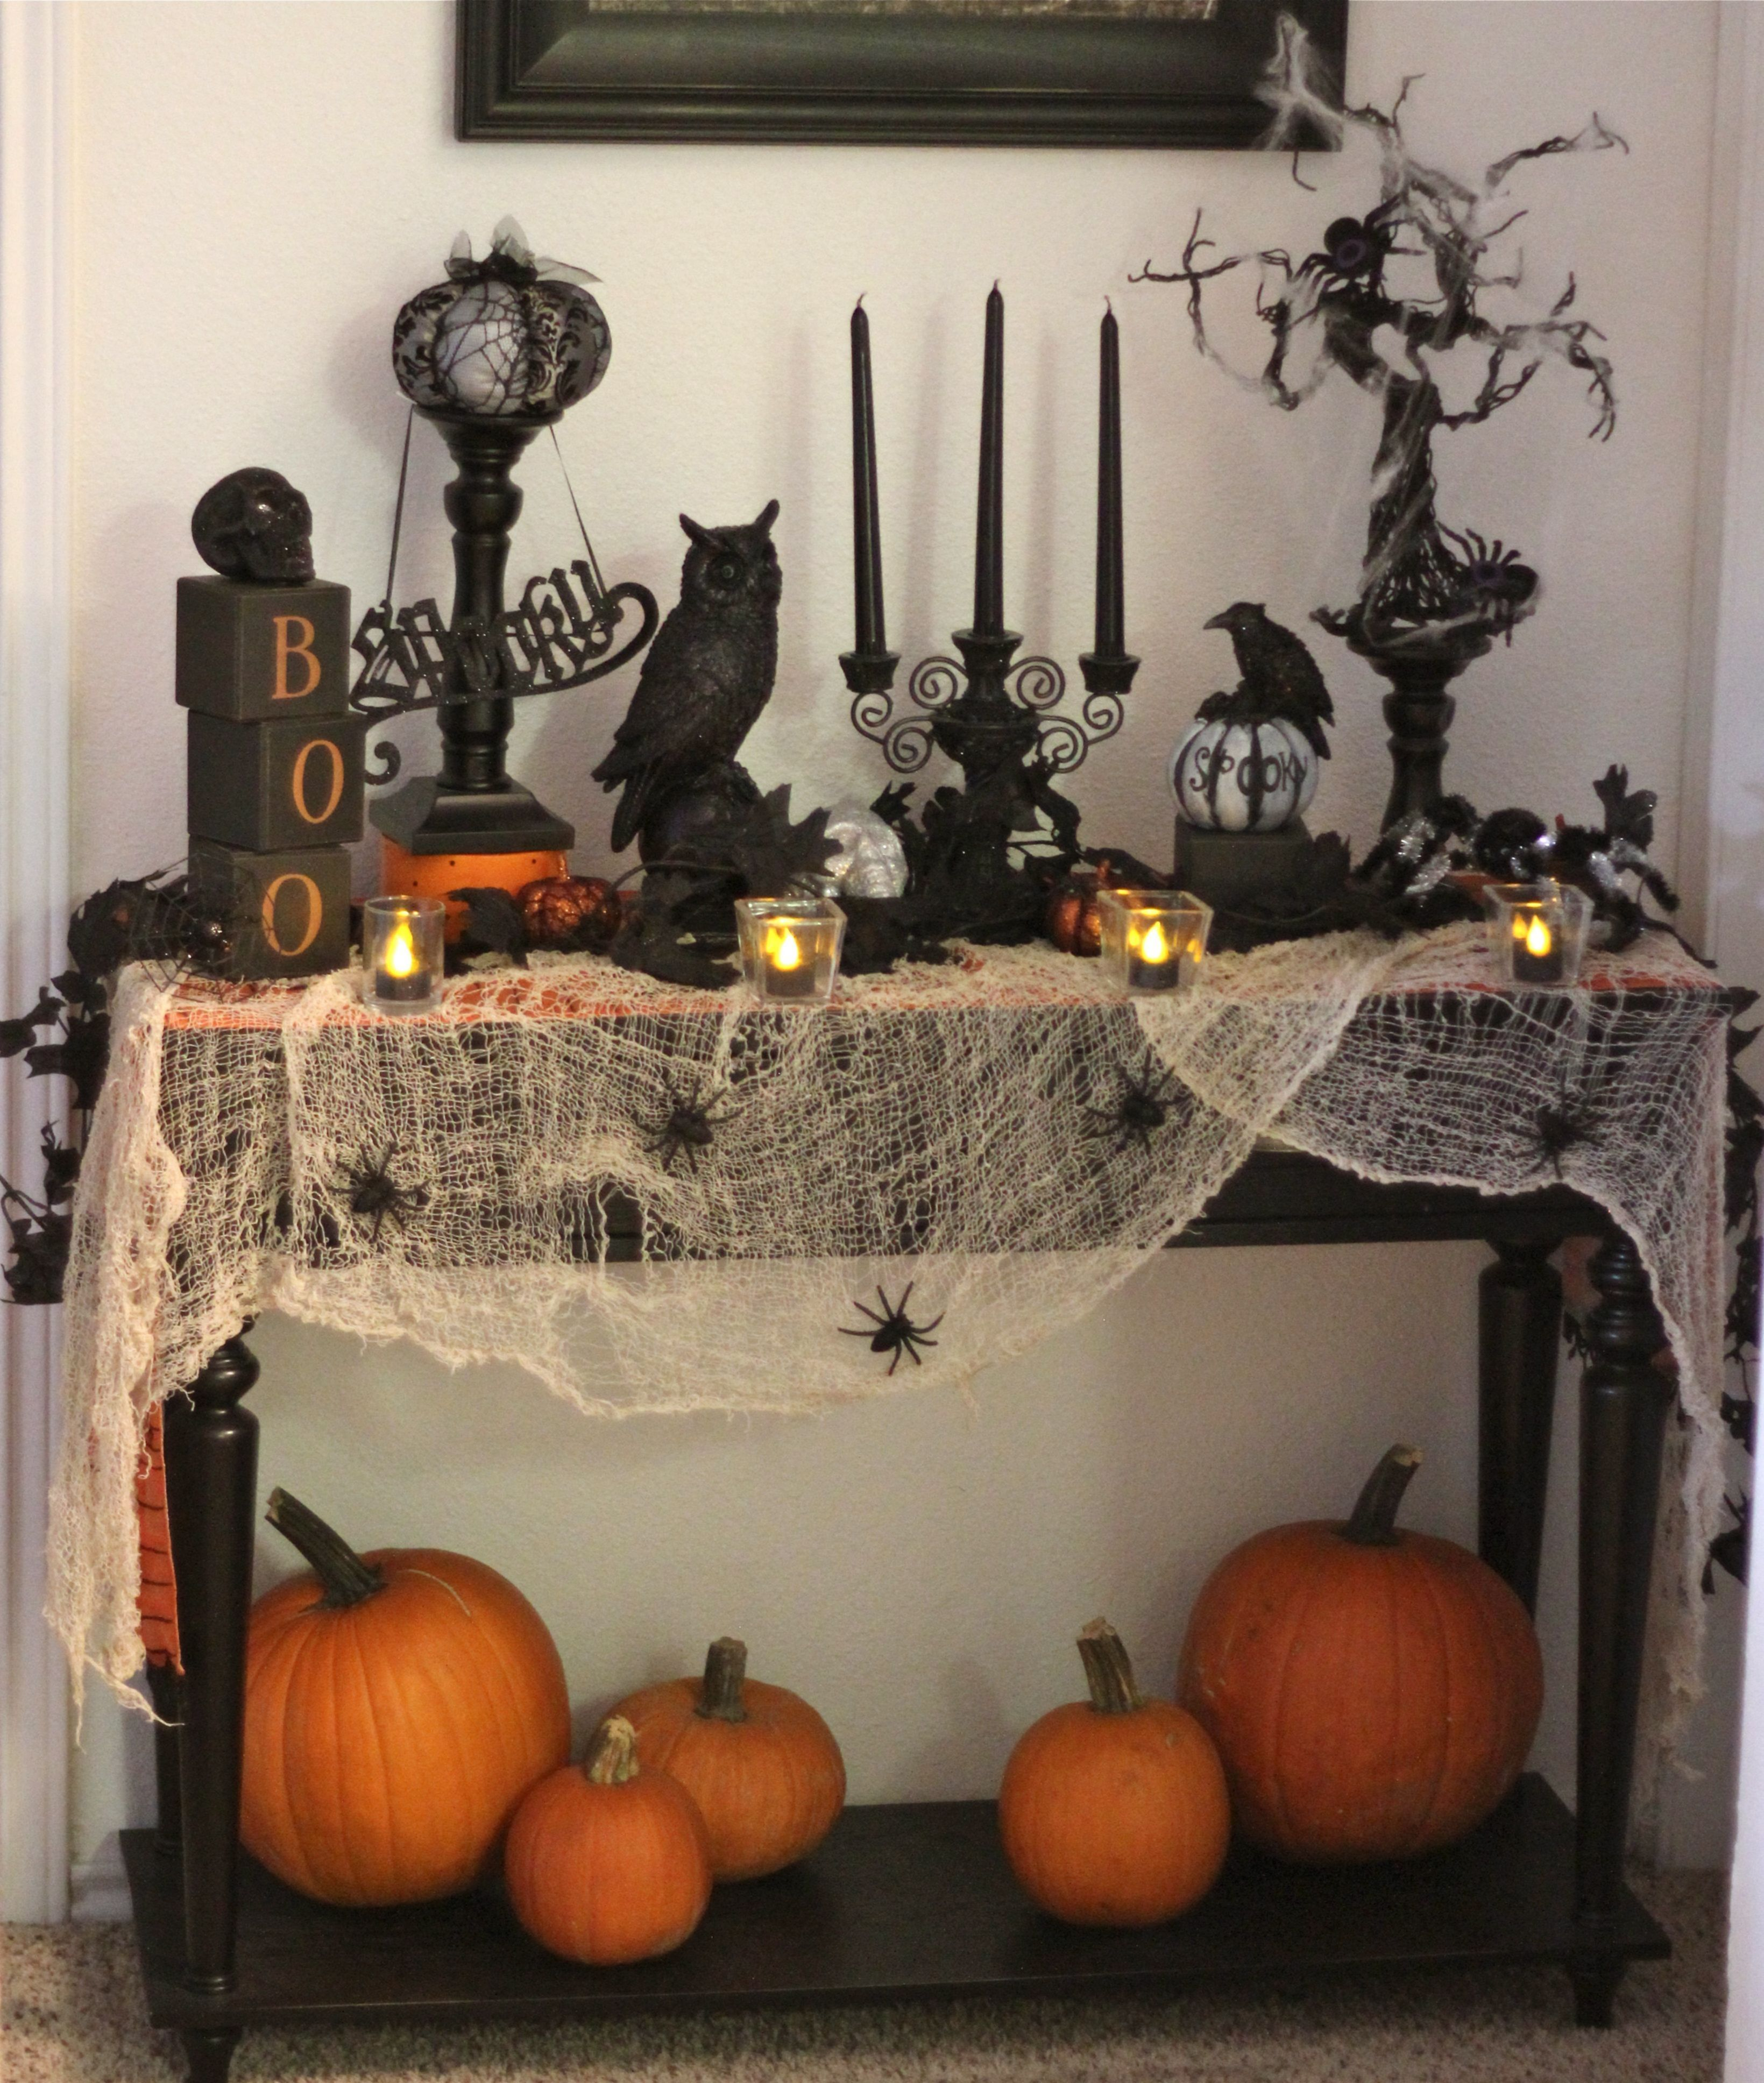 15 Unique and Funny Indoor Home Decoration Ideas To Celebrate Halloween in Your Home